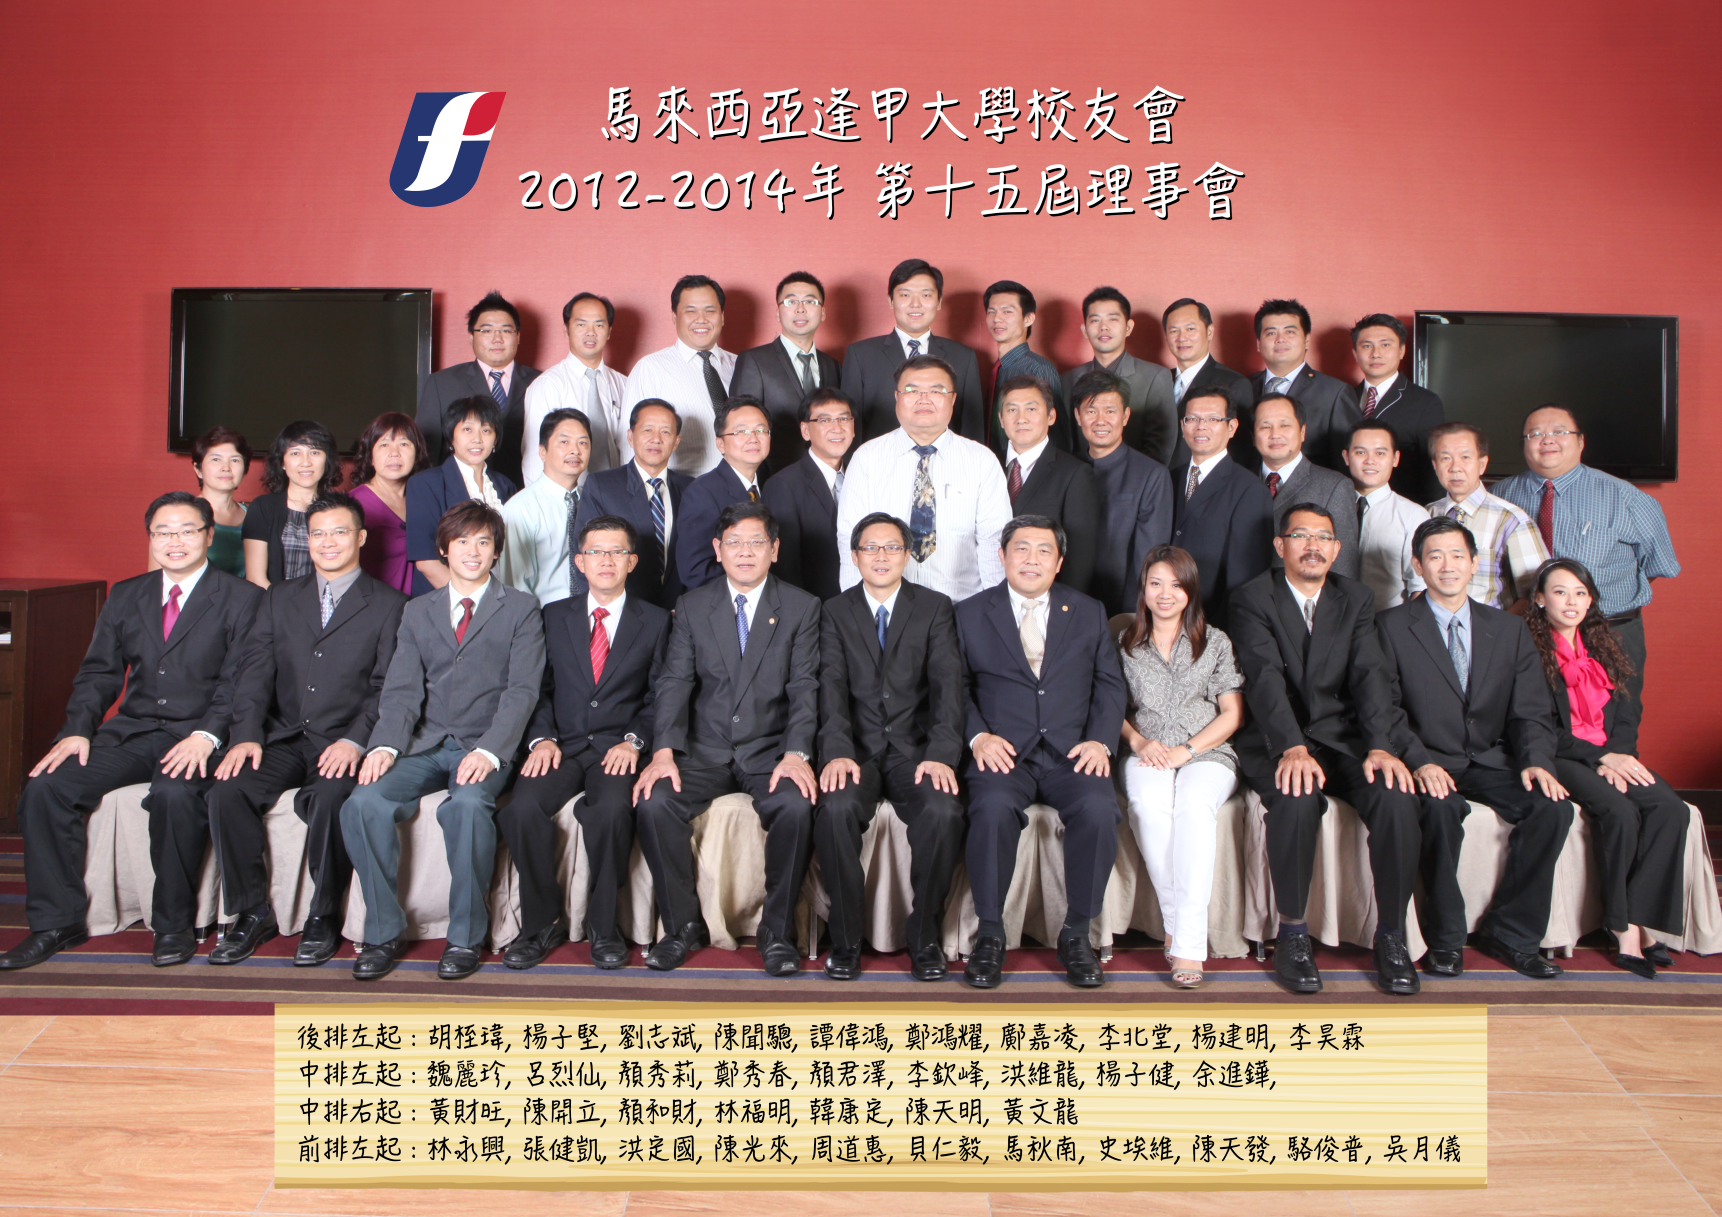 resize FCU-15th-Committee-2012-14---A4.png